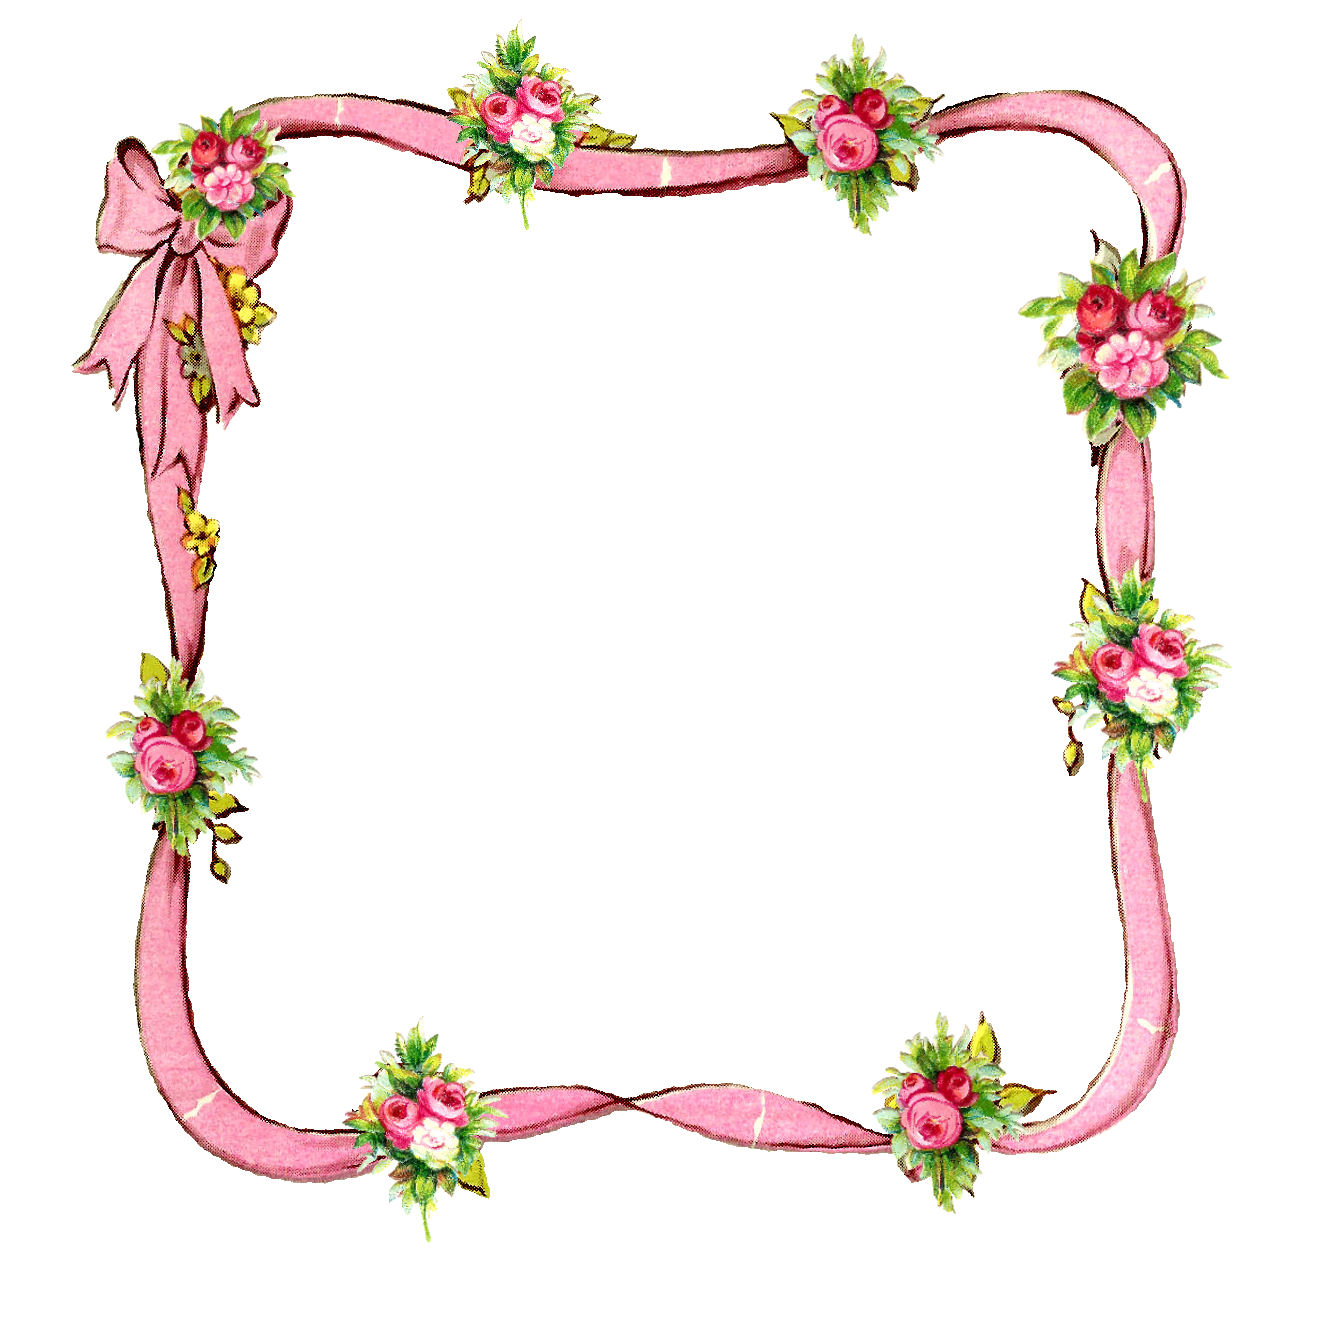 graphic about Printable Graphics named The Graphics Monarch: No cost Printable Do-it-yourself Rose Ribbon Electronic